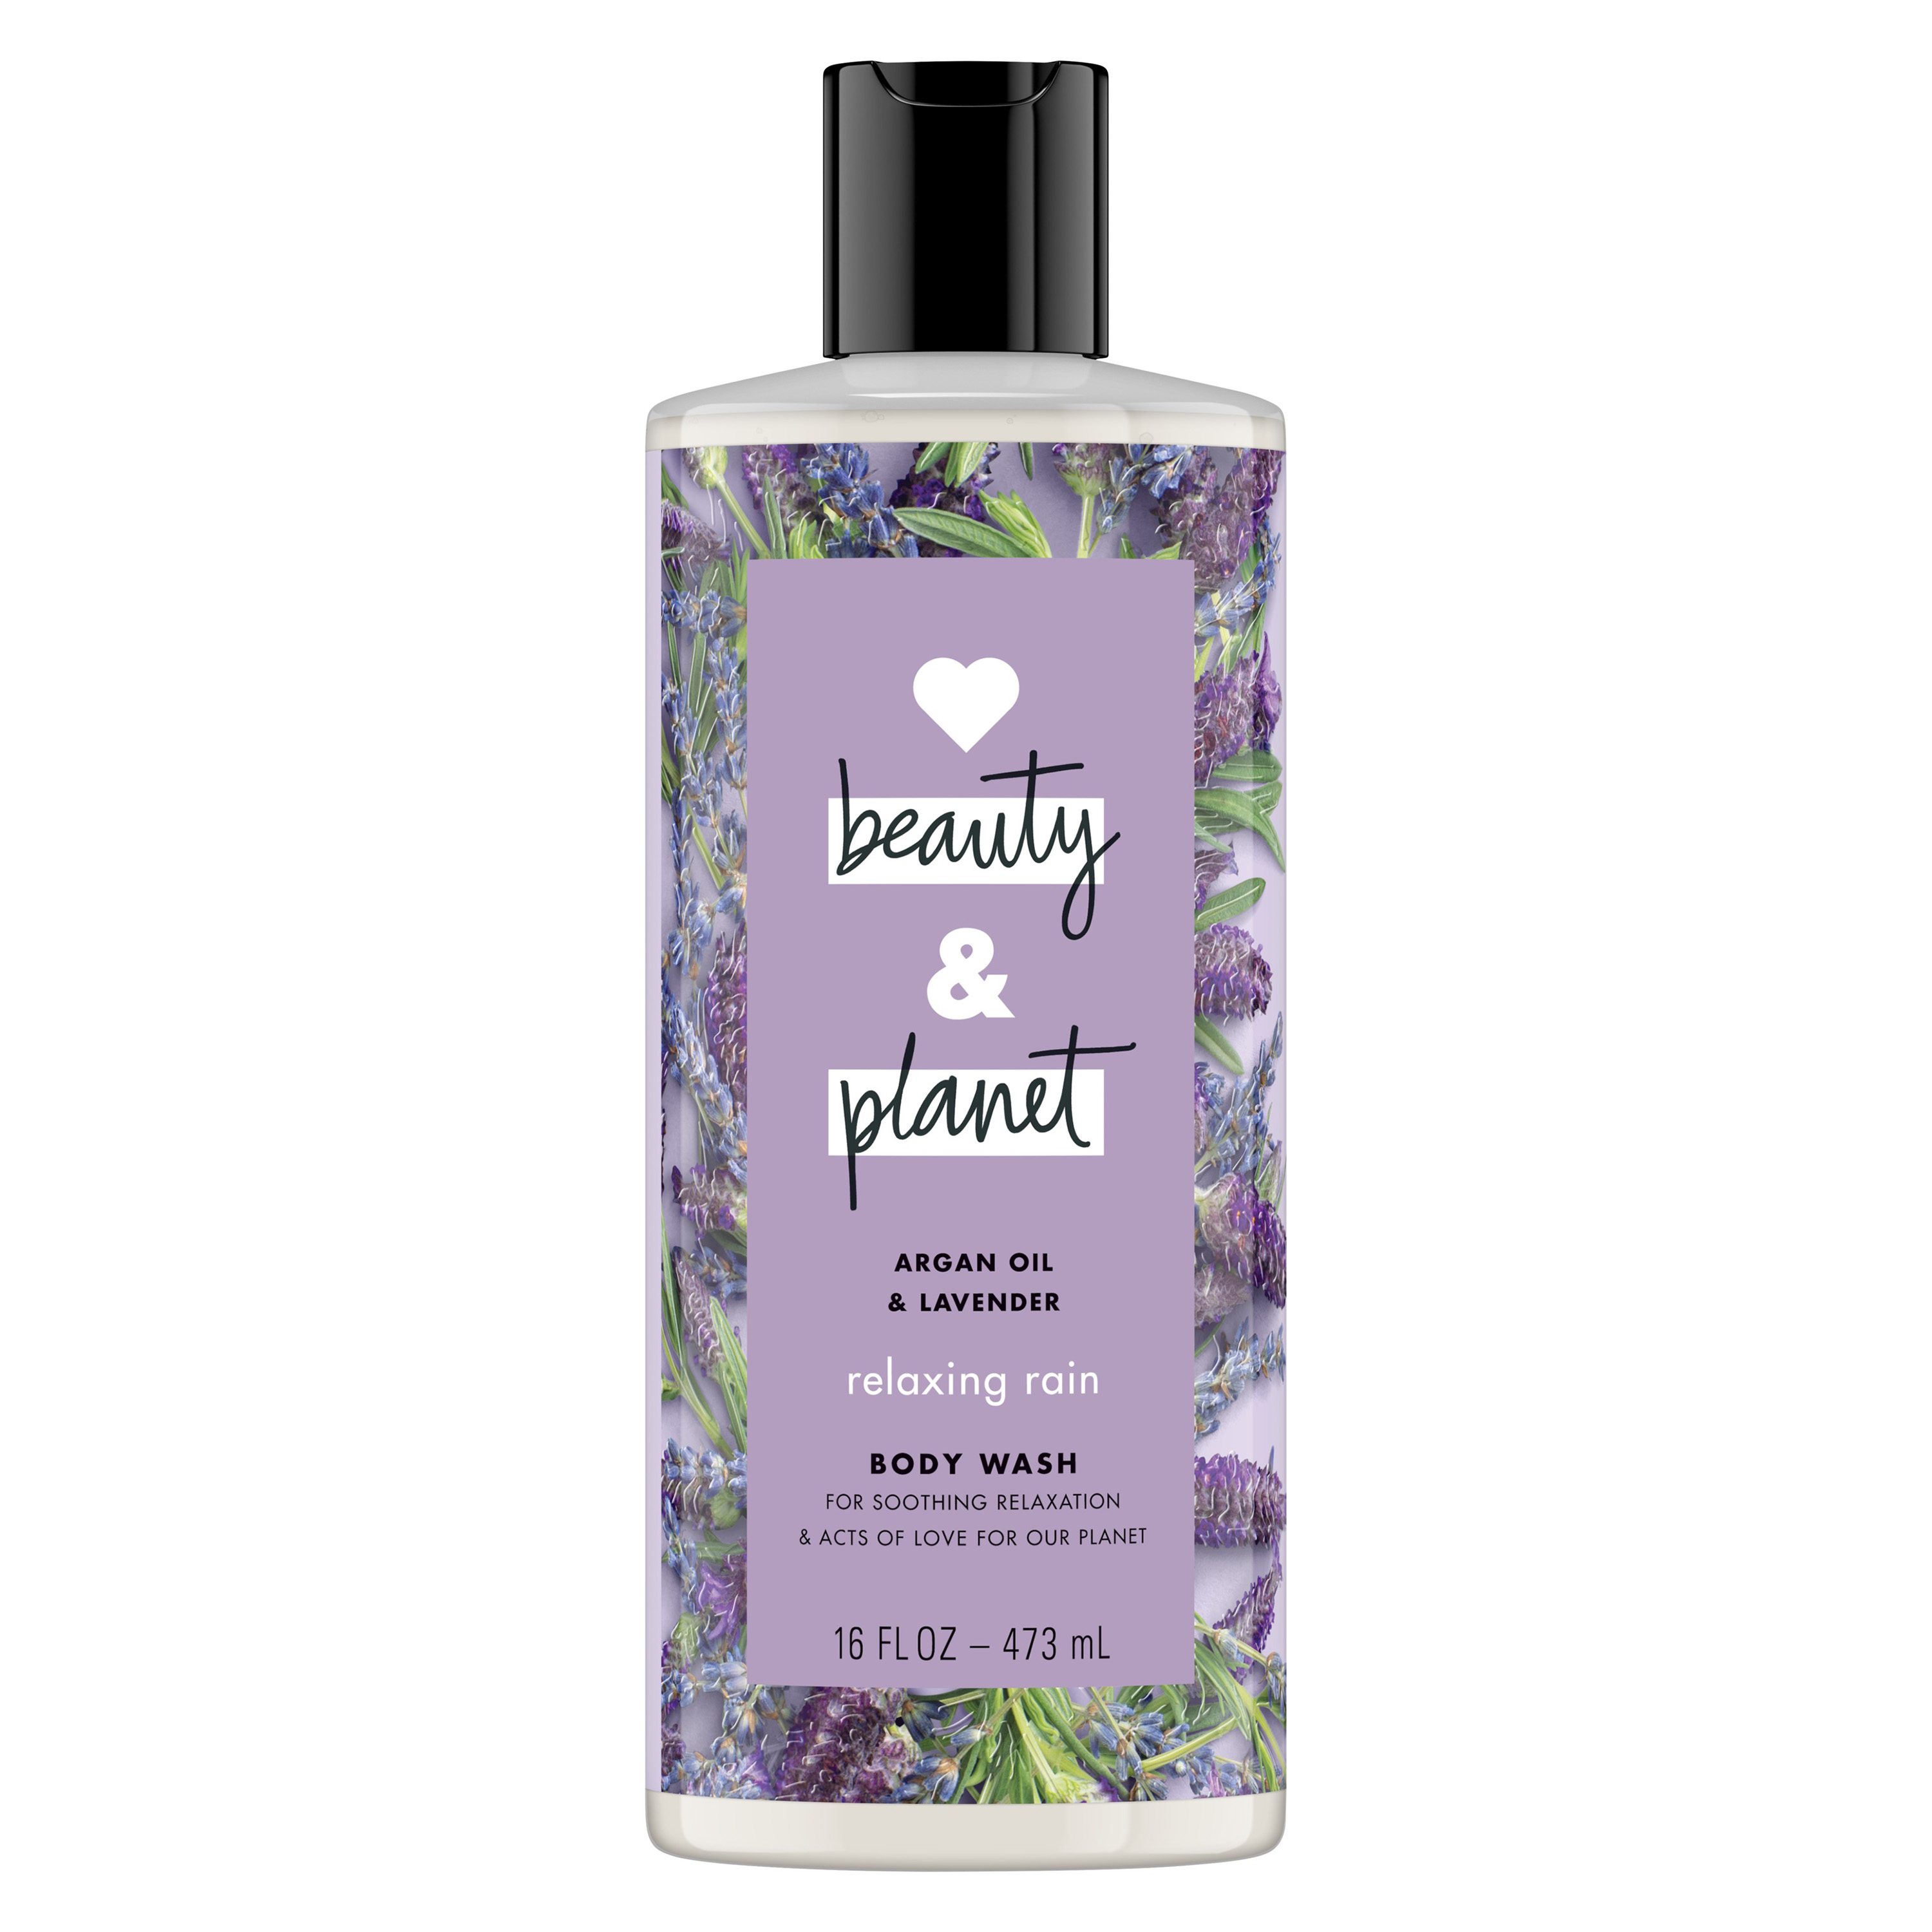 Love Beauty And Planet Relaxing Rain Body Wash Argan Oil & Lavender 16 oz